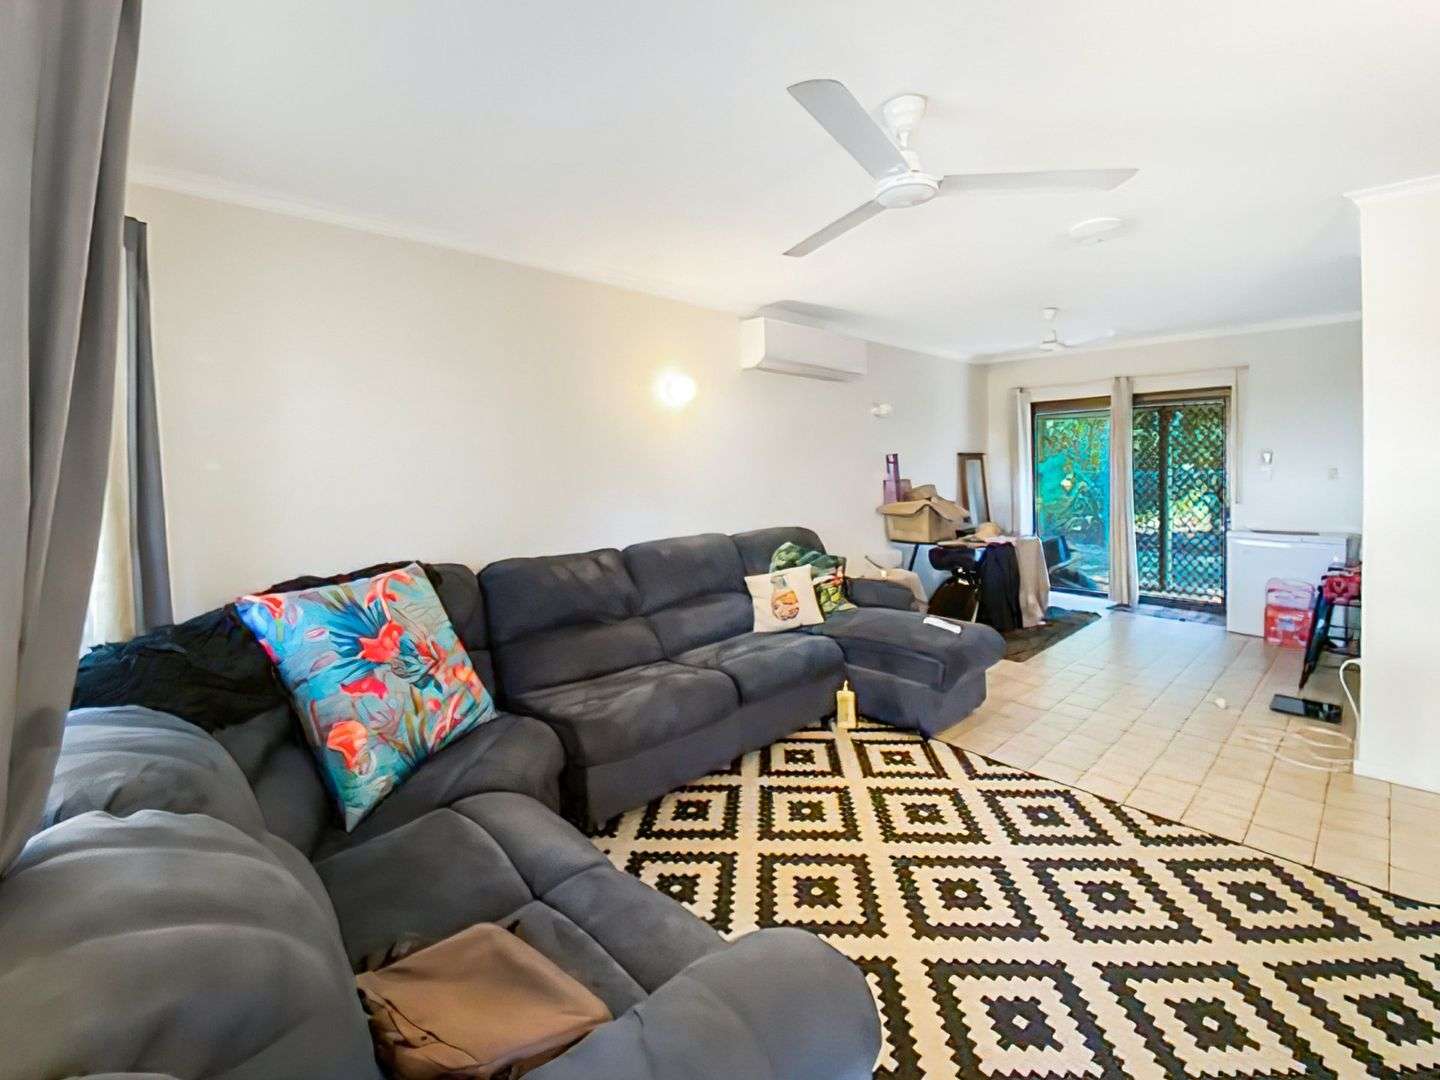 2 bedrooms Apartment / Unit / Flat in 4/5 Power Crescent KATHERINE NT, 0850